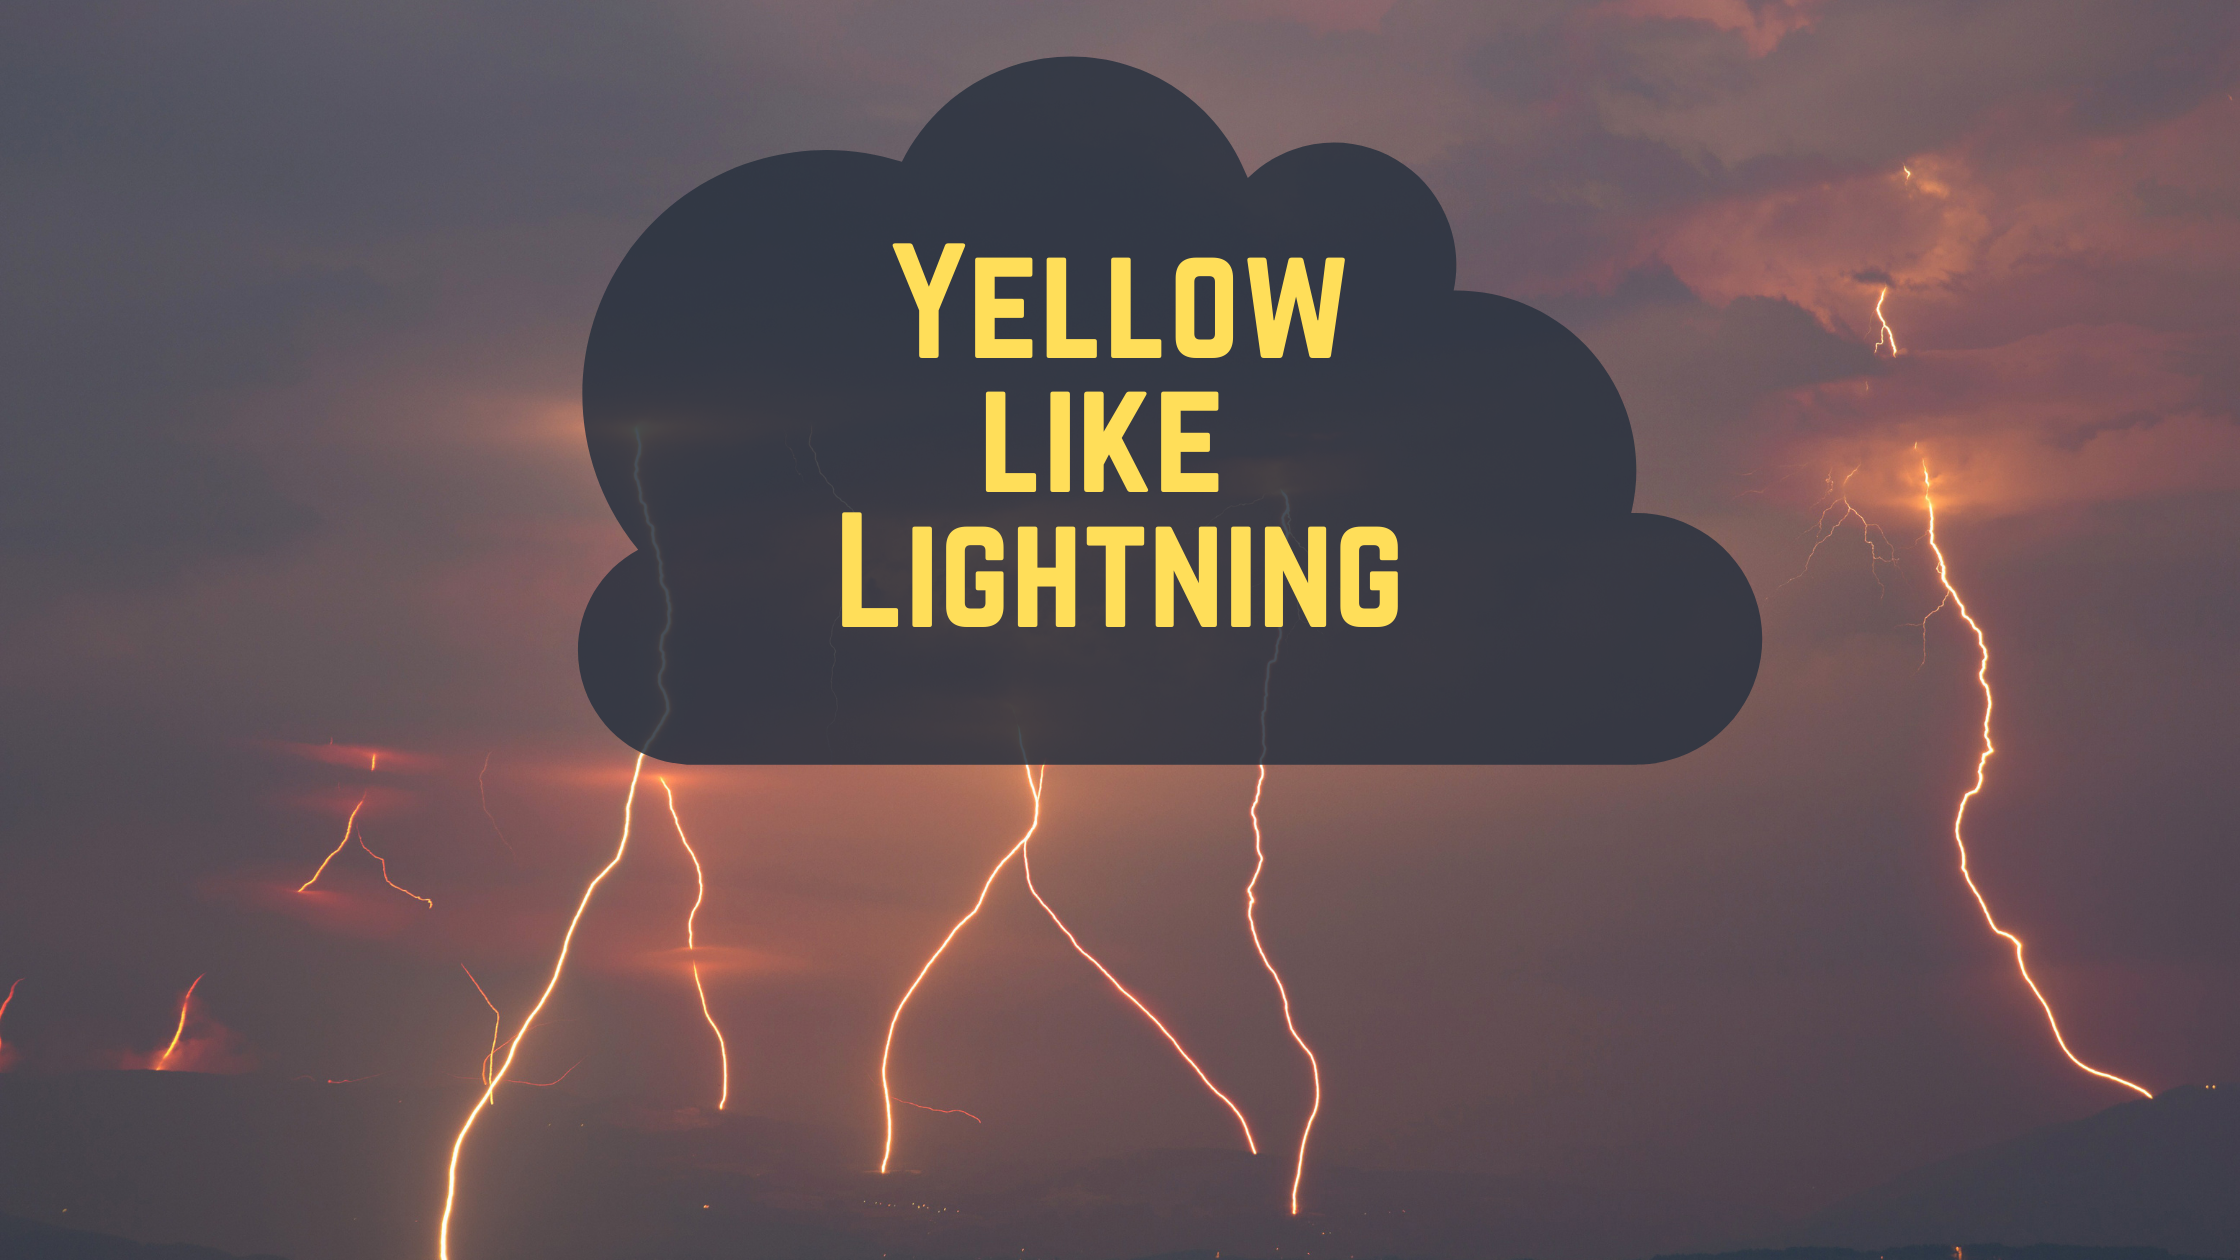 The Best Shades of Yellow to Use for Packaging: Yellow Like Lightning